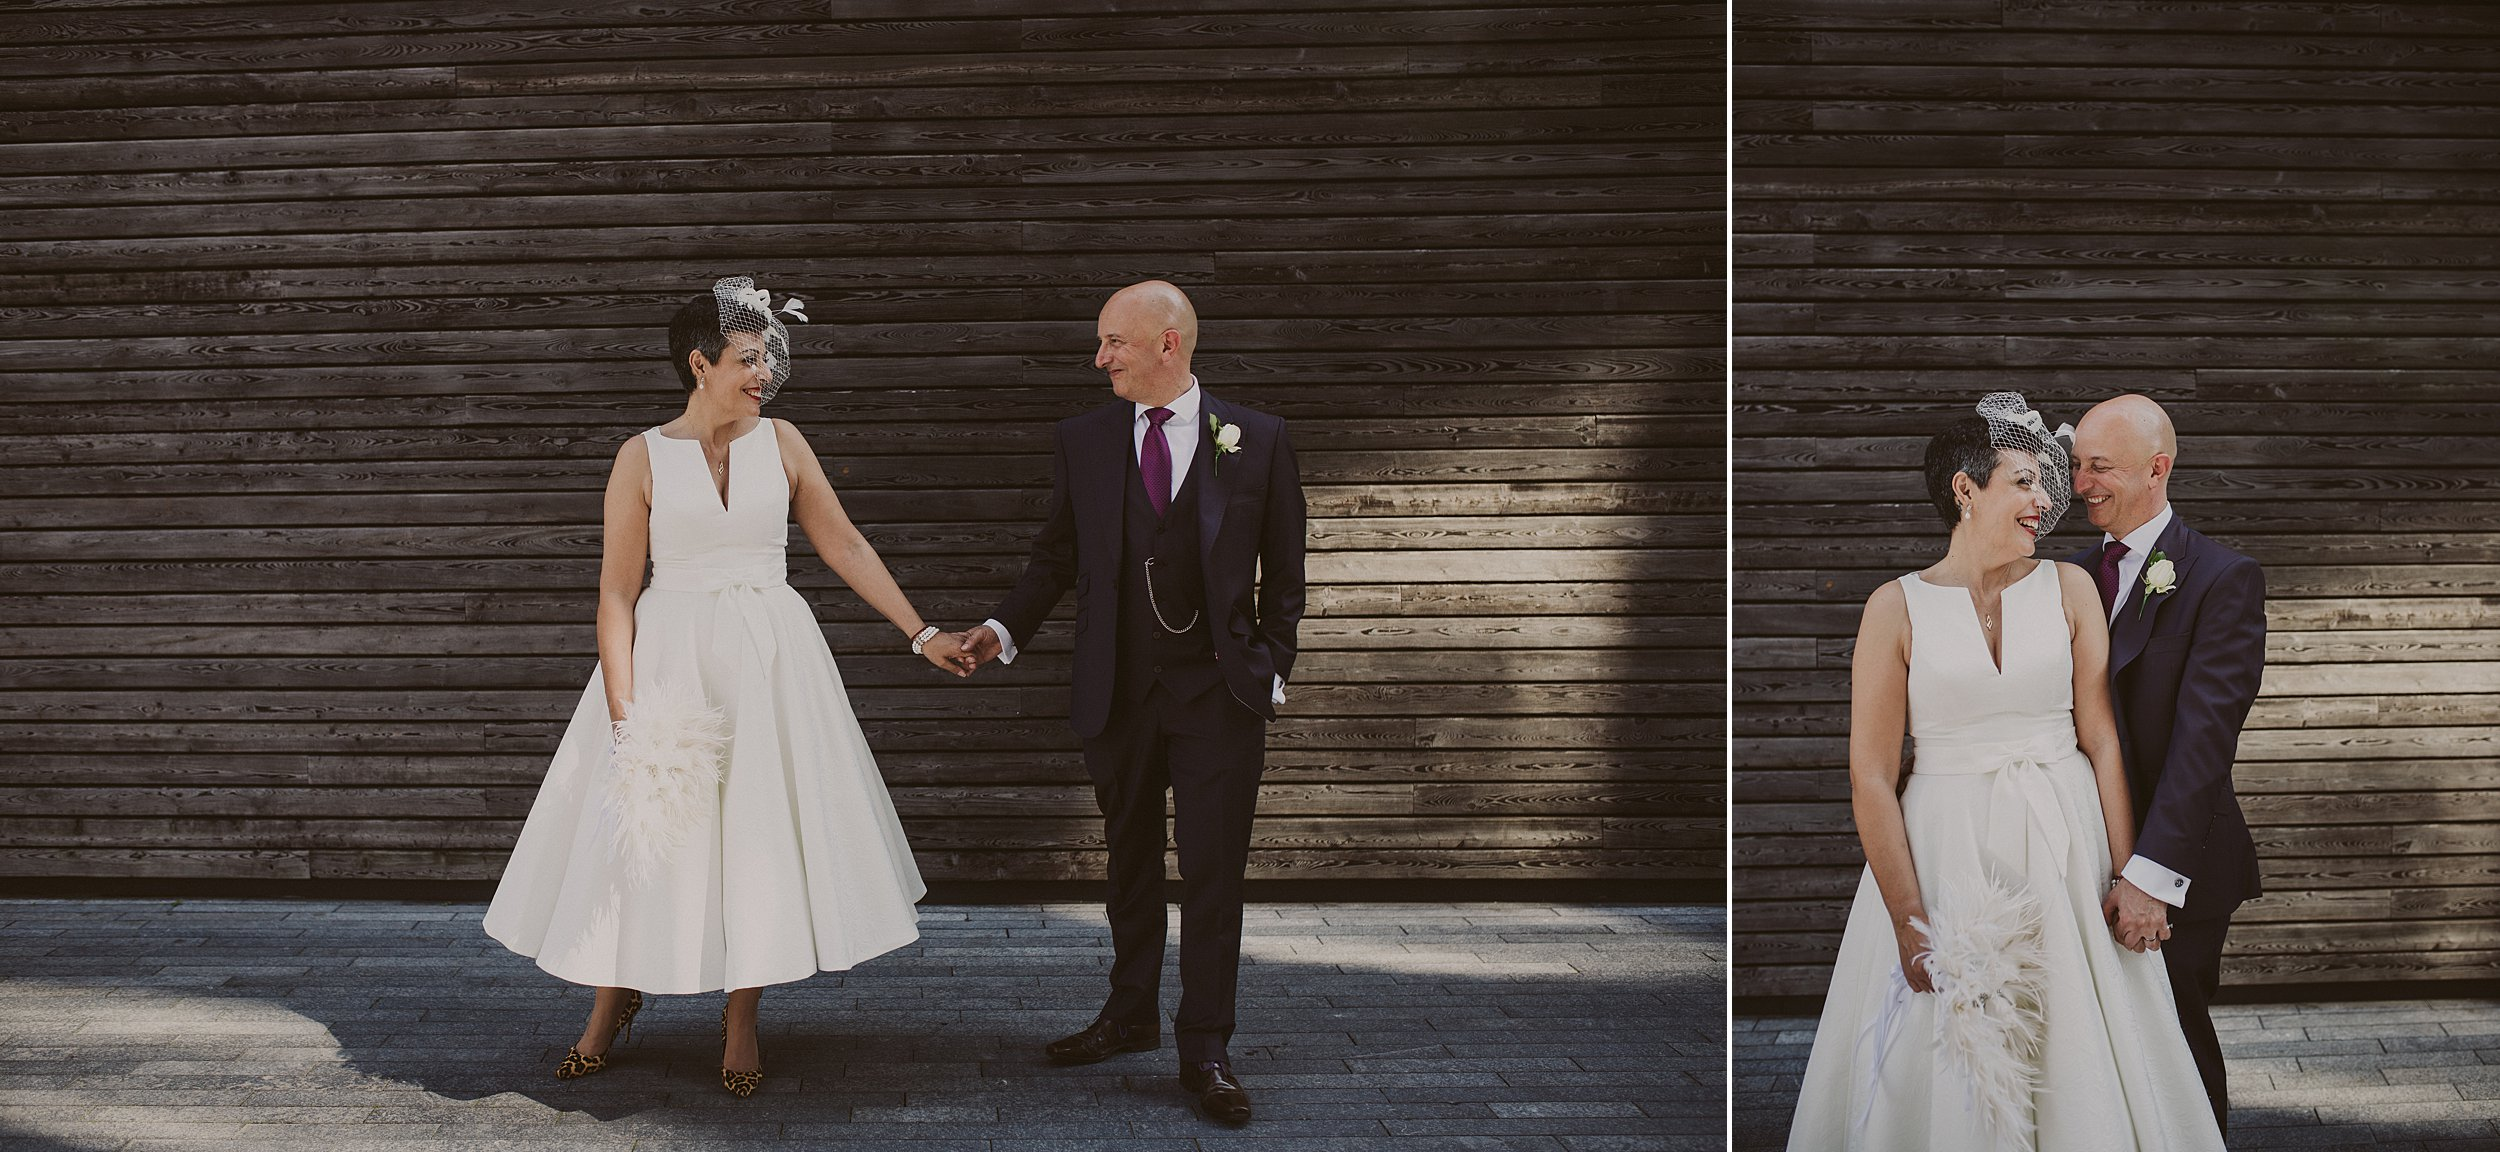 Nuria+Richard-preview-10_stomped-1.jpg